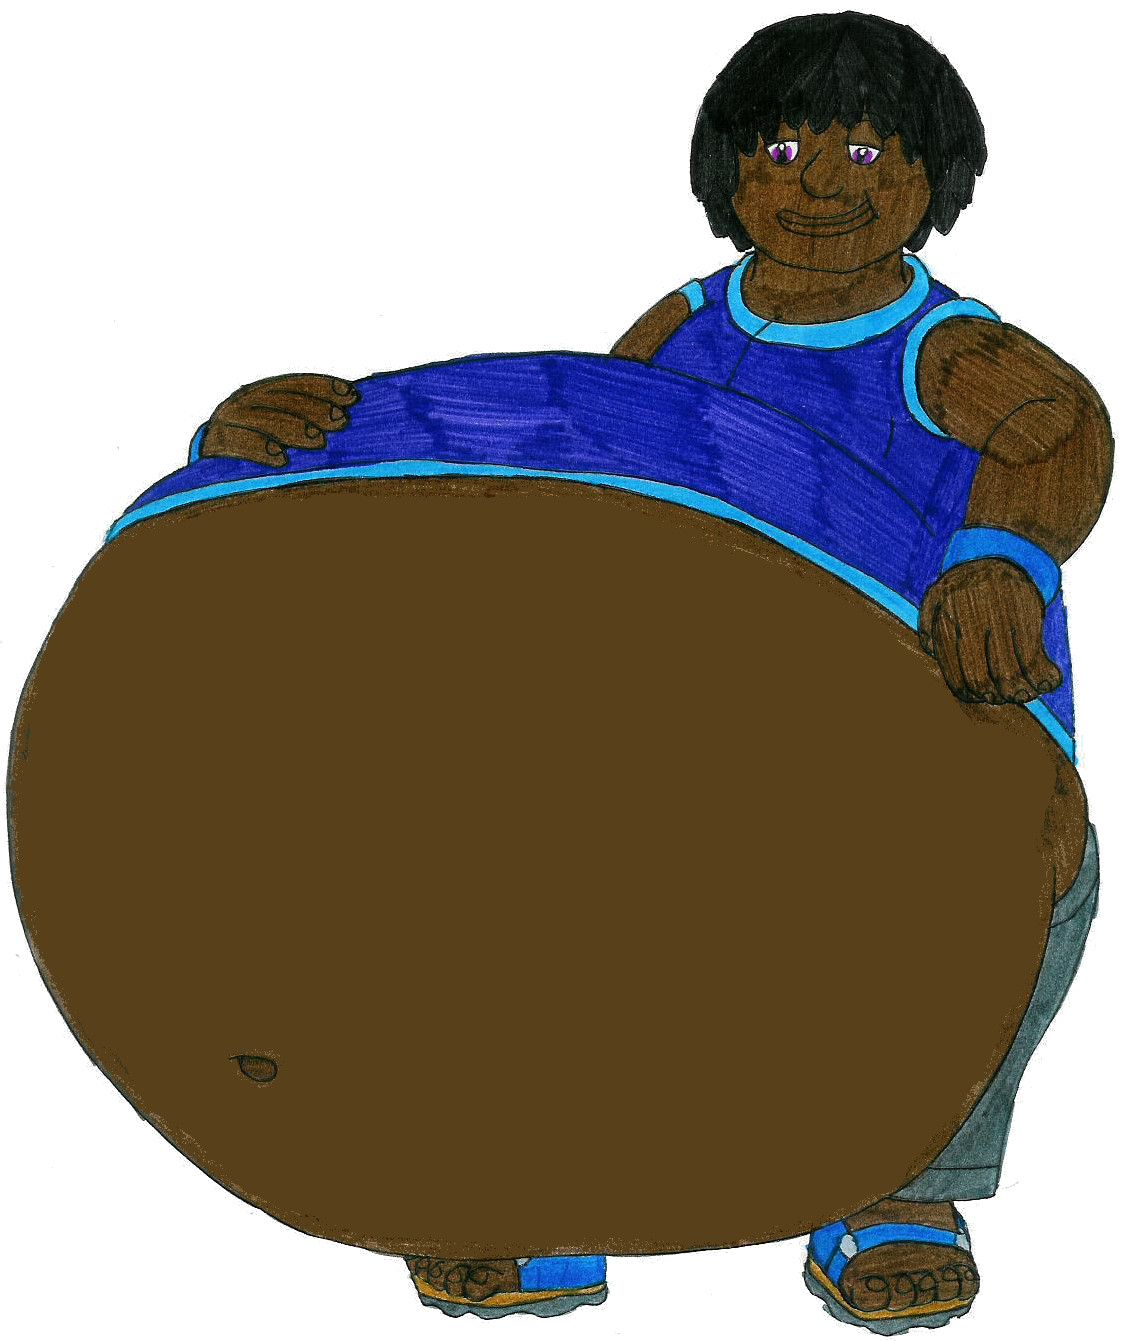 Andys BIG Belly by MCsaurus on DeviantArt